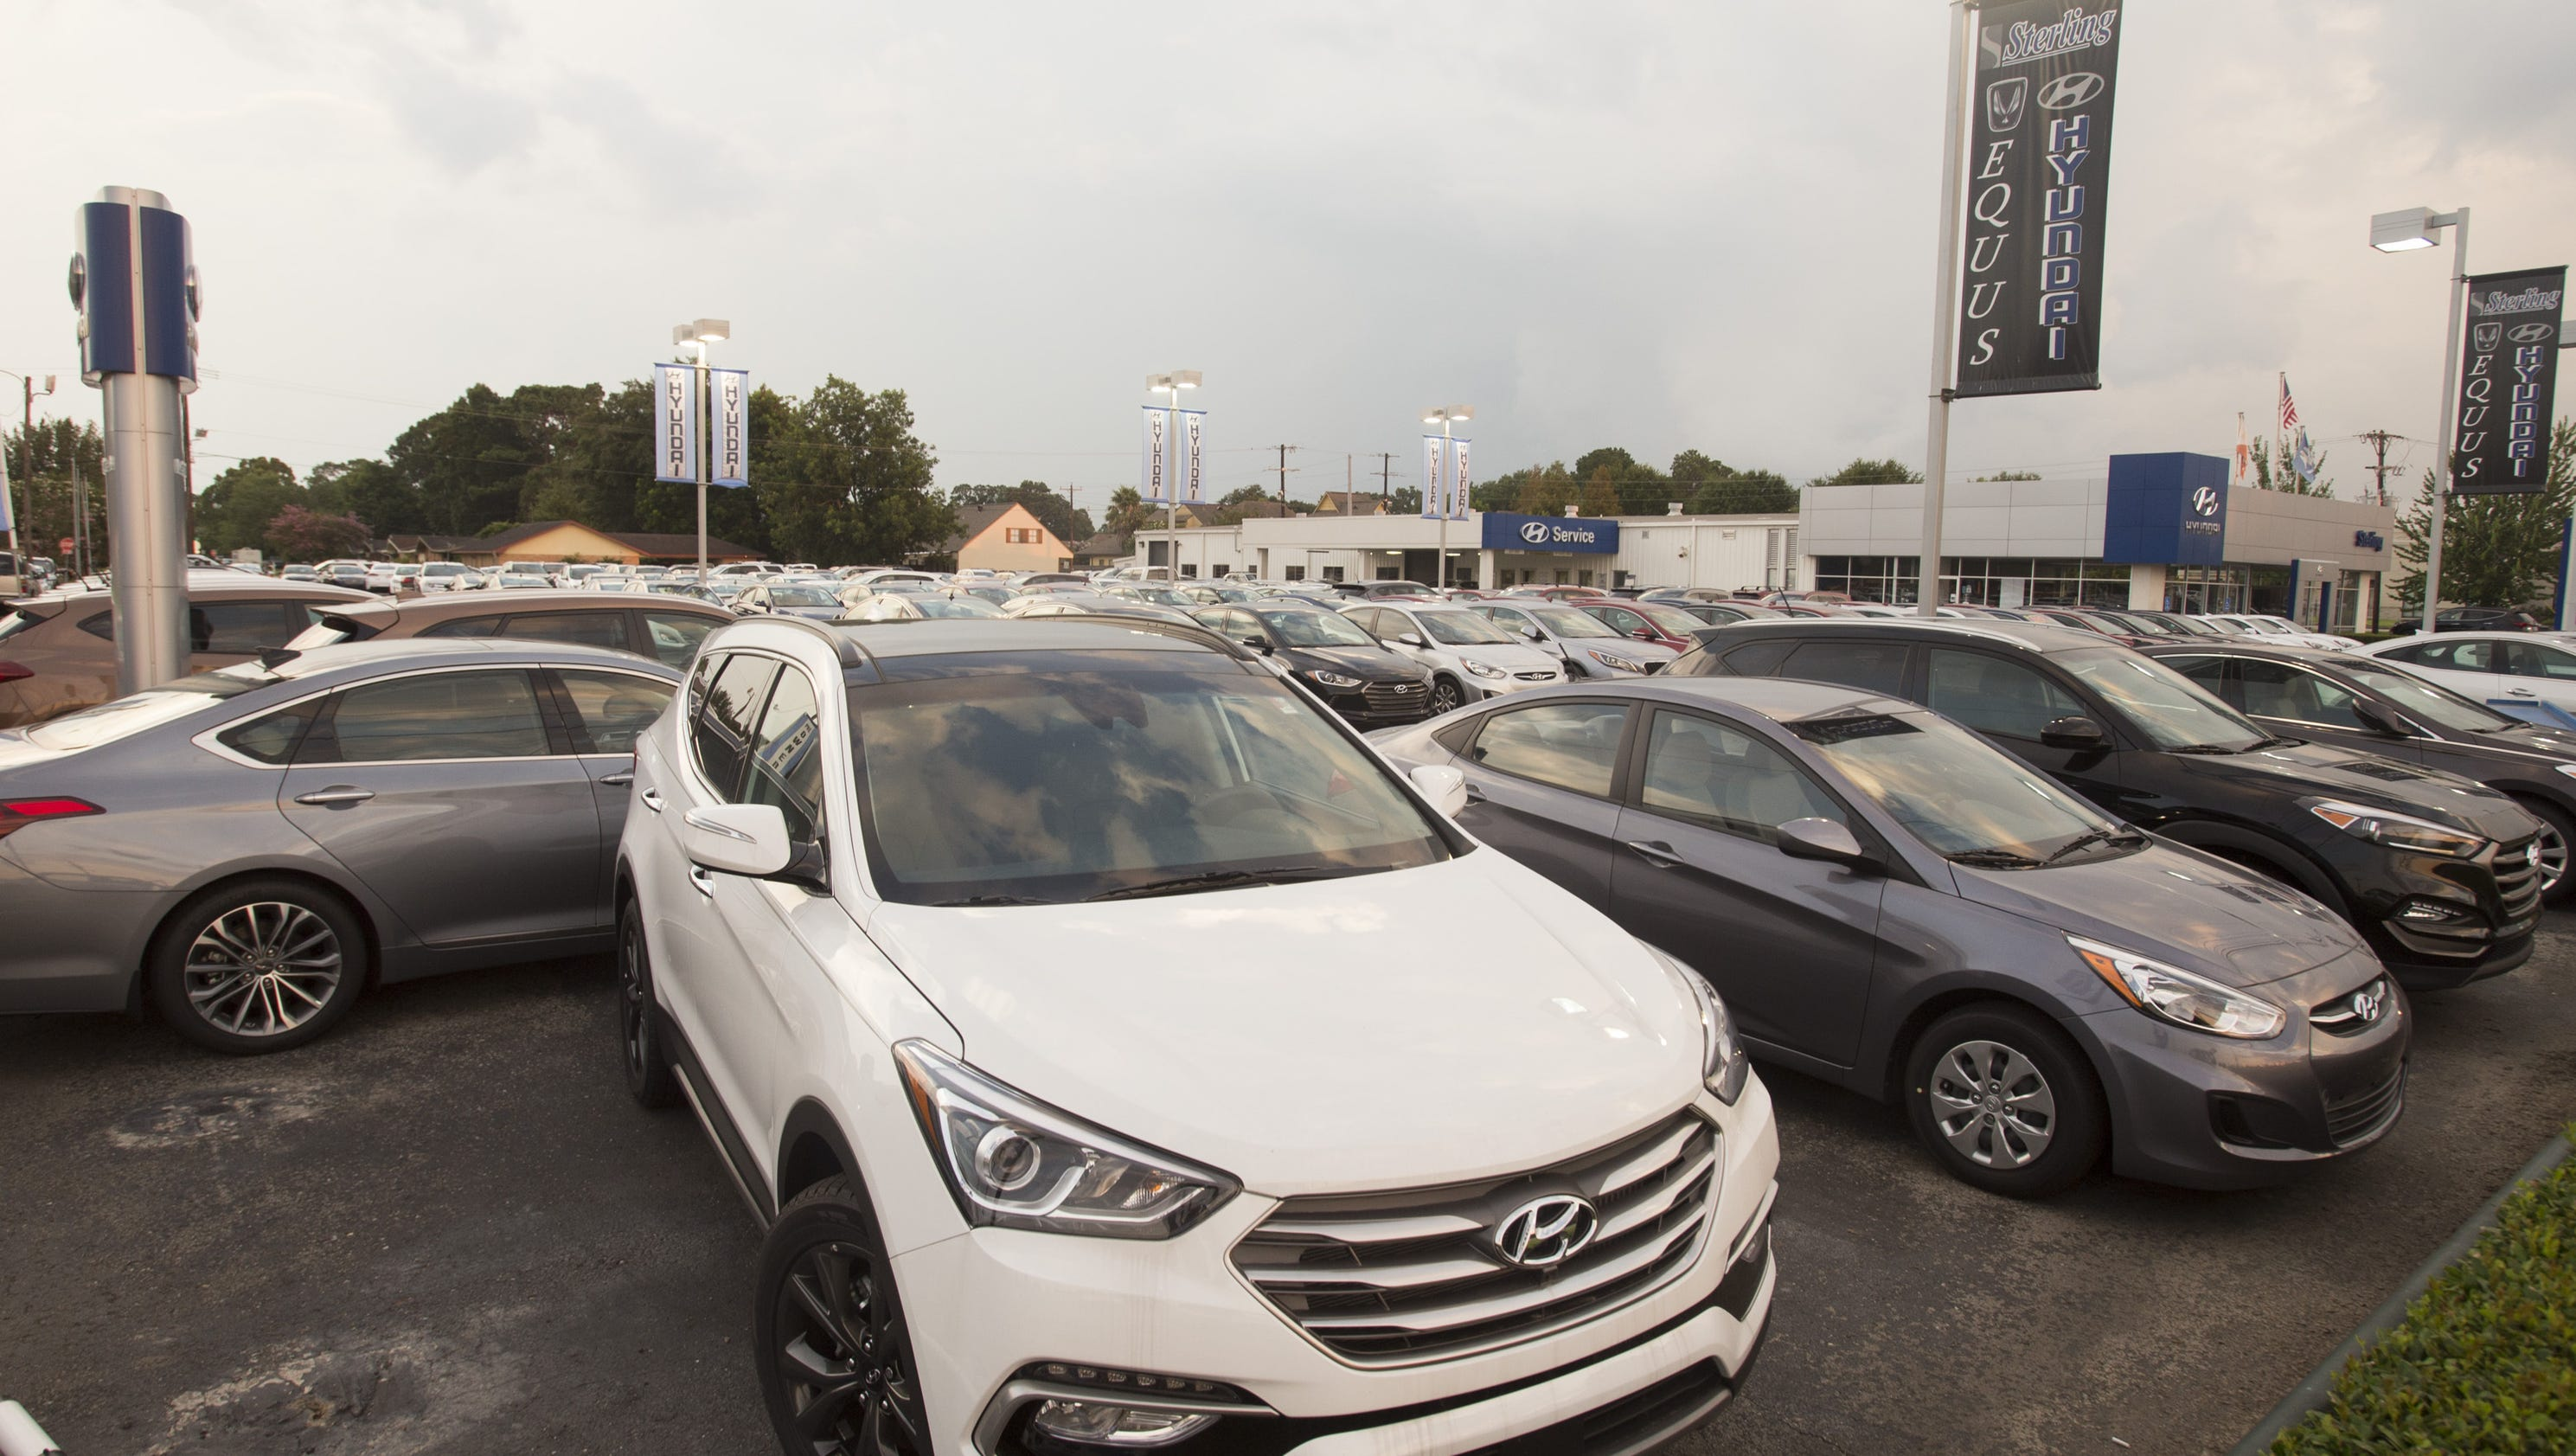 showroom images authorised hospital of near photos kvr dealers hyundai view kozhikode car national pictures front mavoor bzdet road